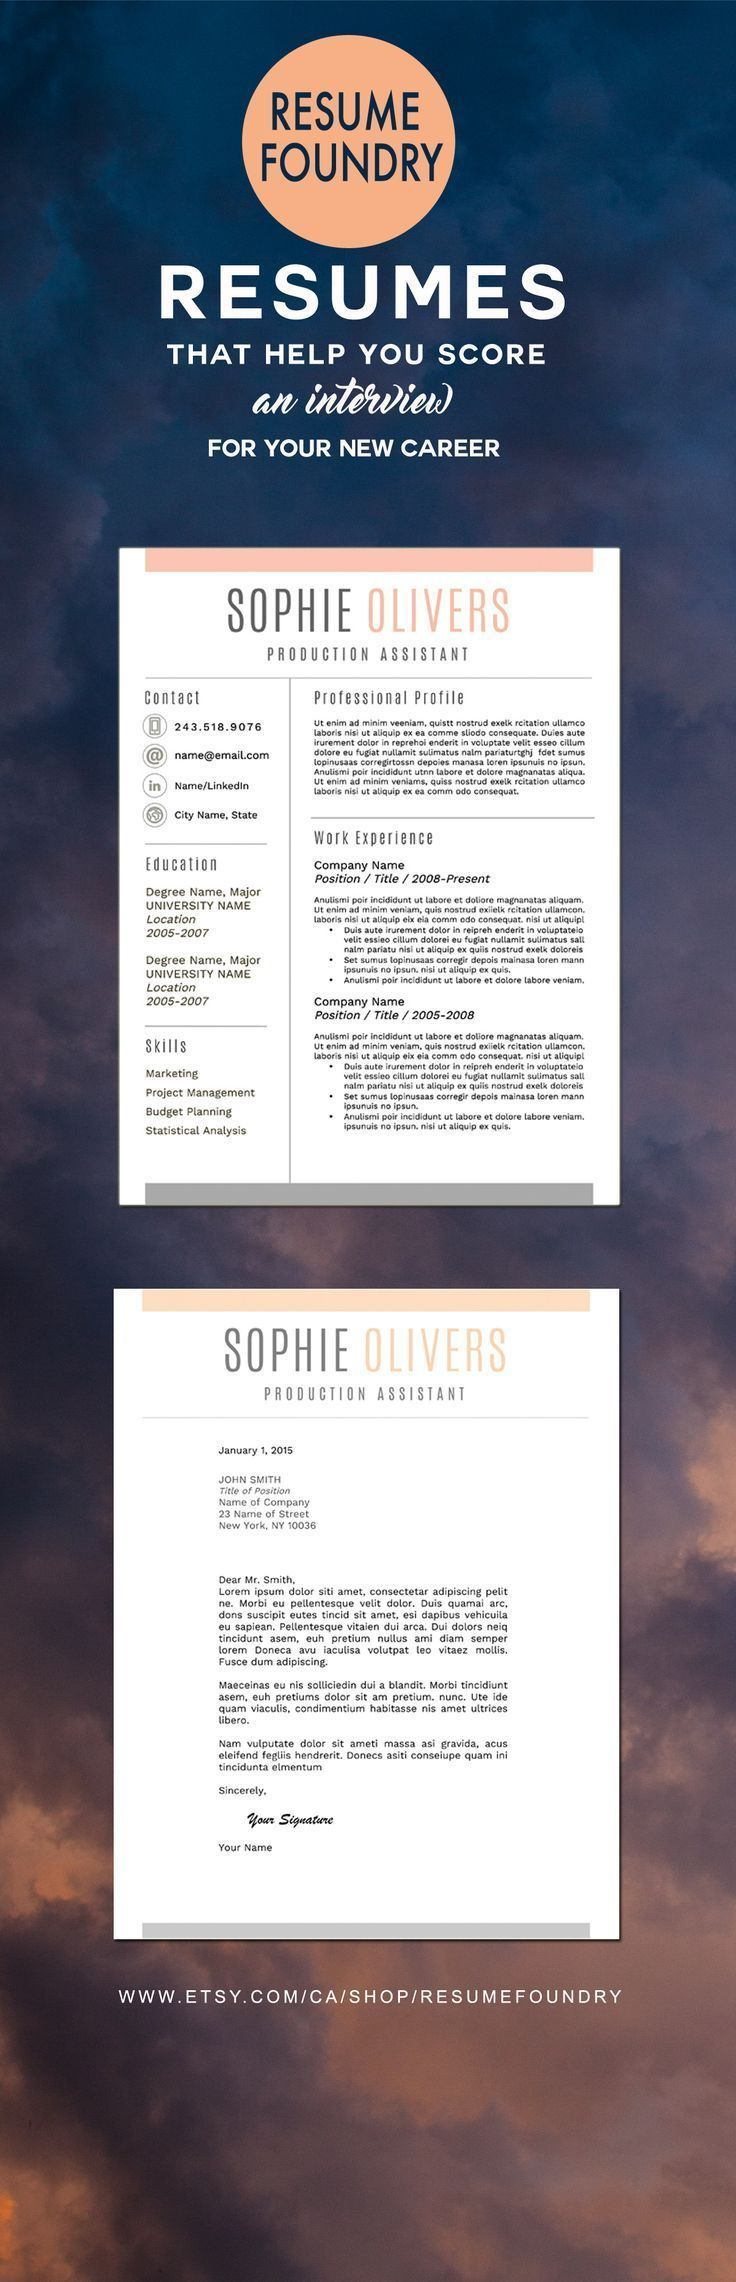 executive housekeeper resume%0A Completely transform your resume for     with a professionally designed  resume template